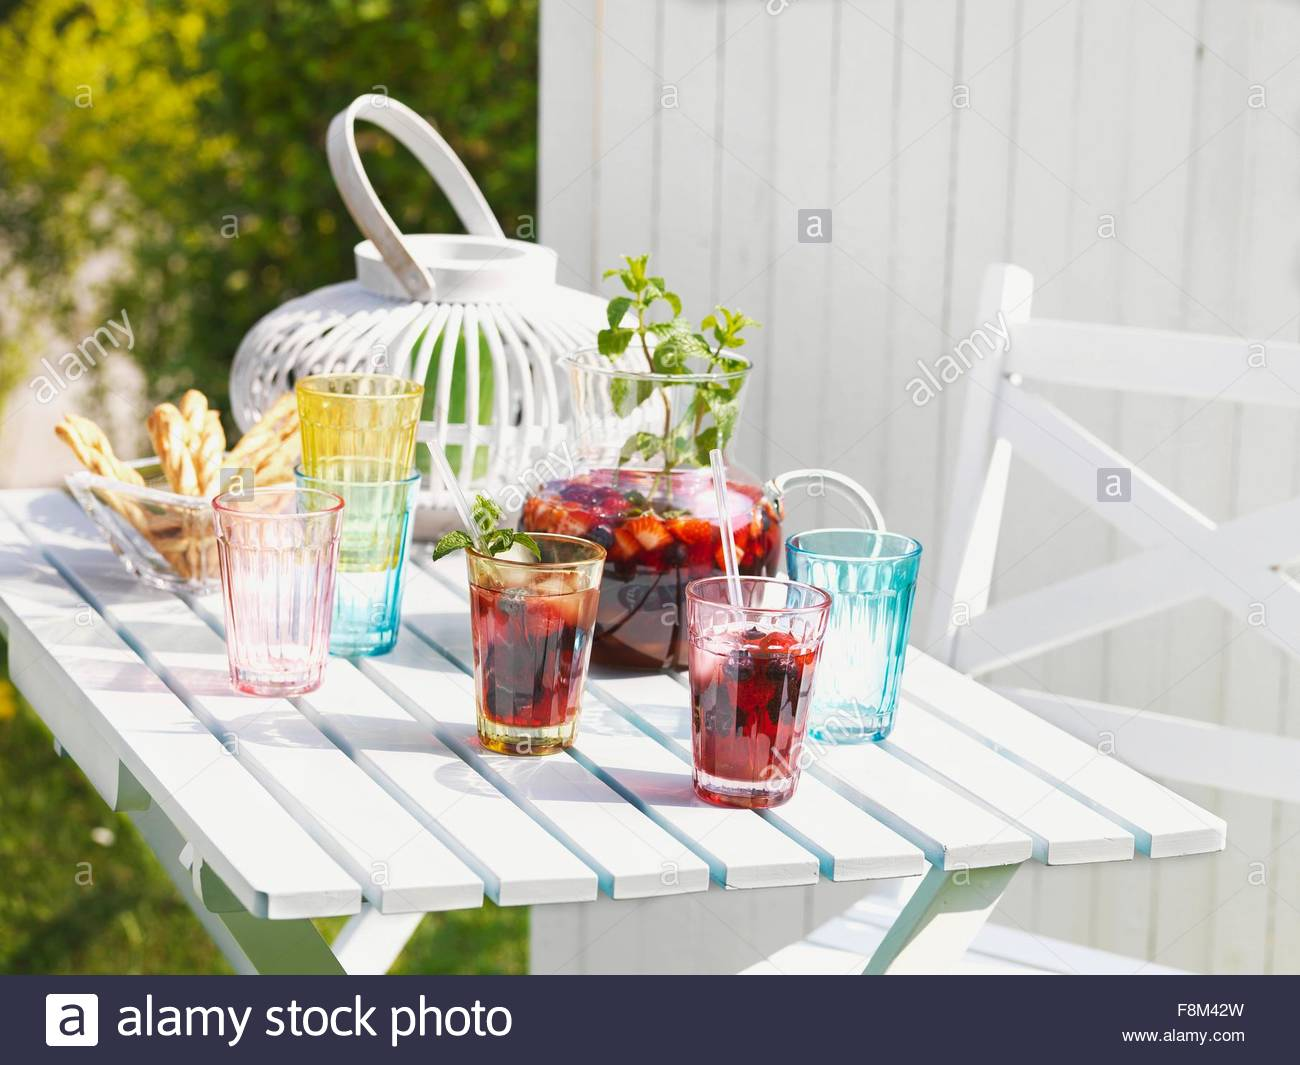 Sangria on a summery garden table - Stock Image